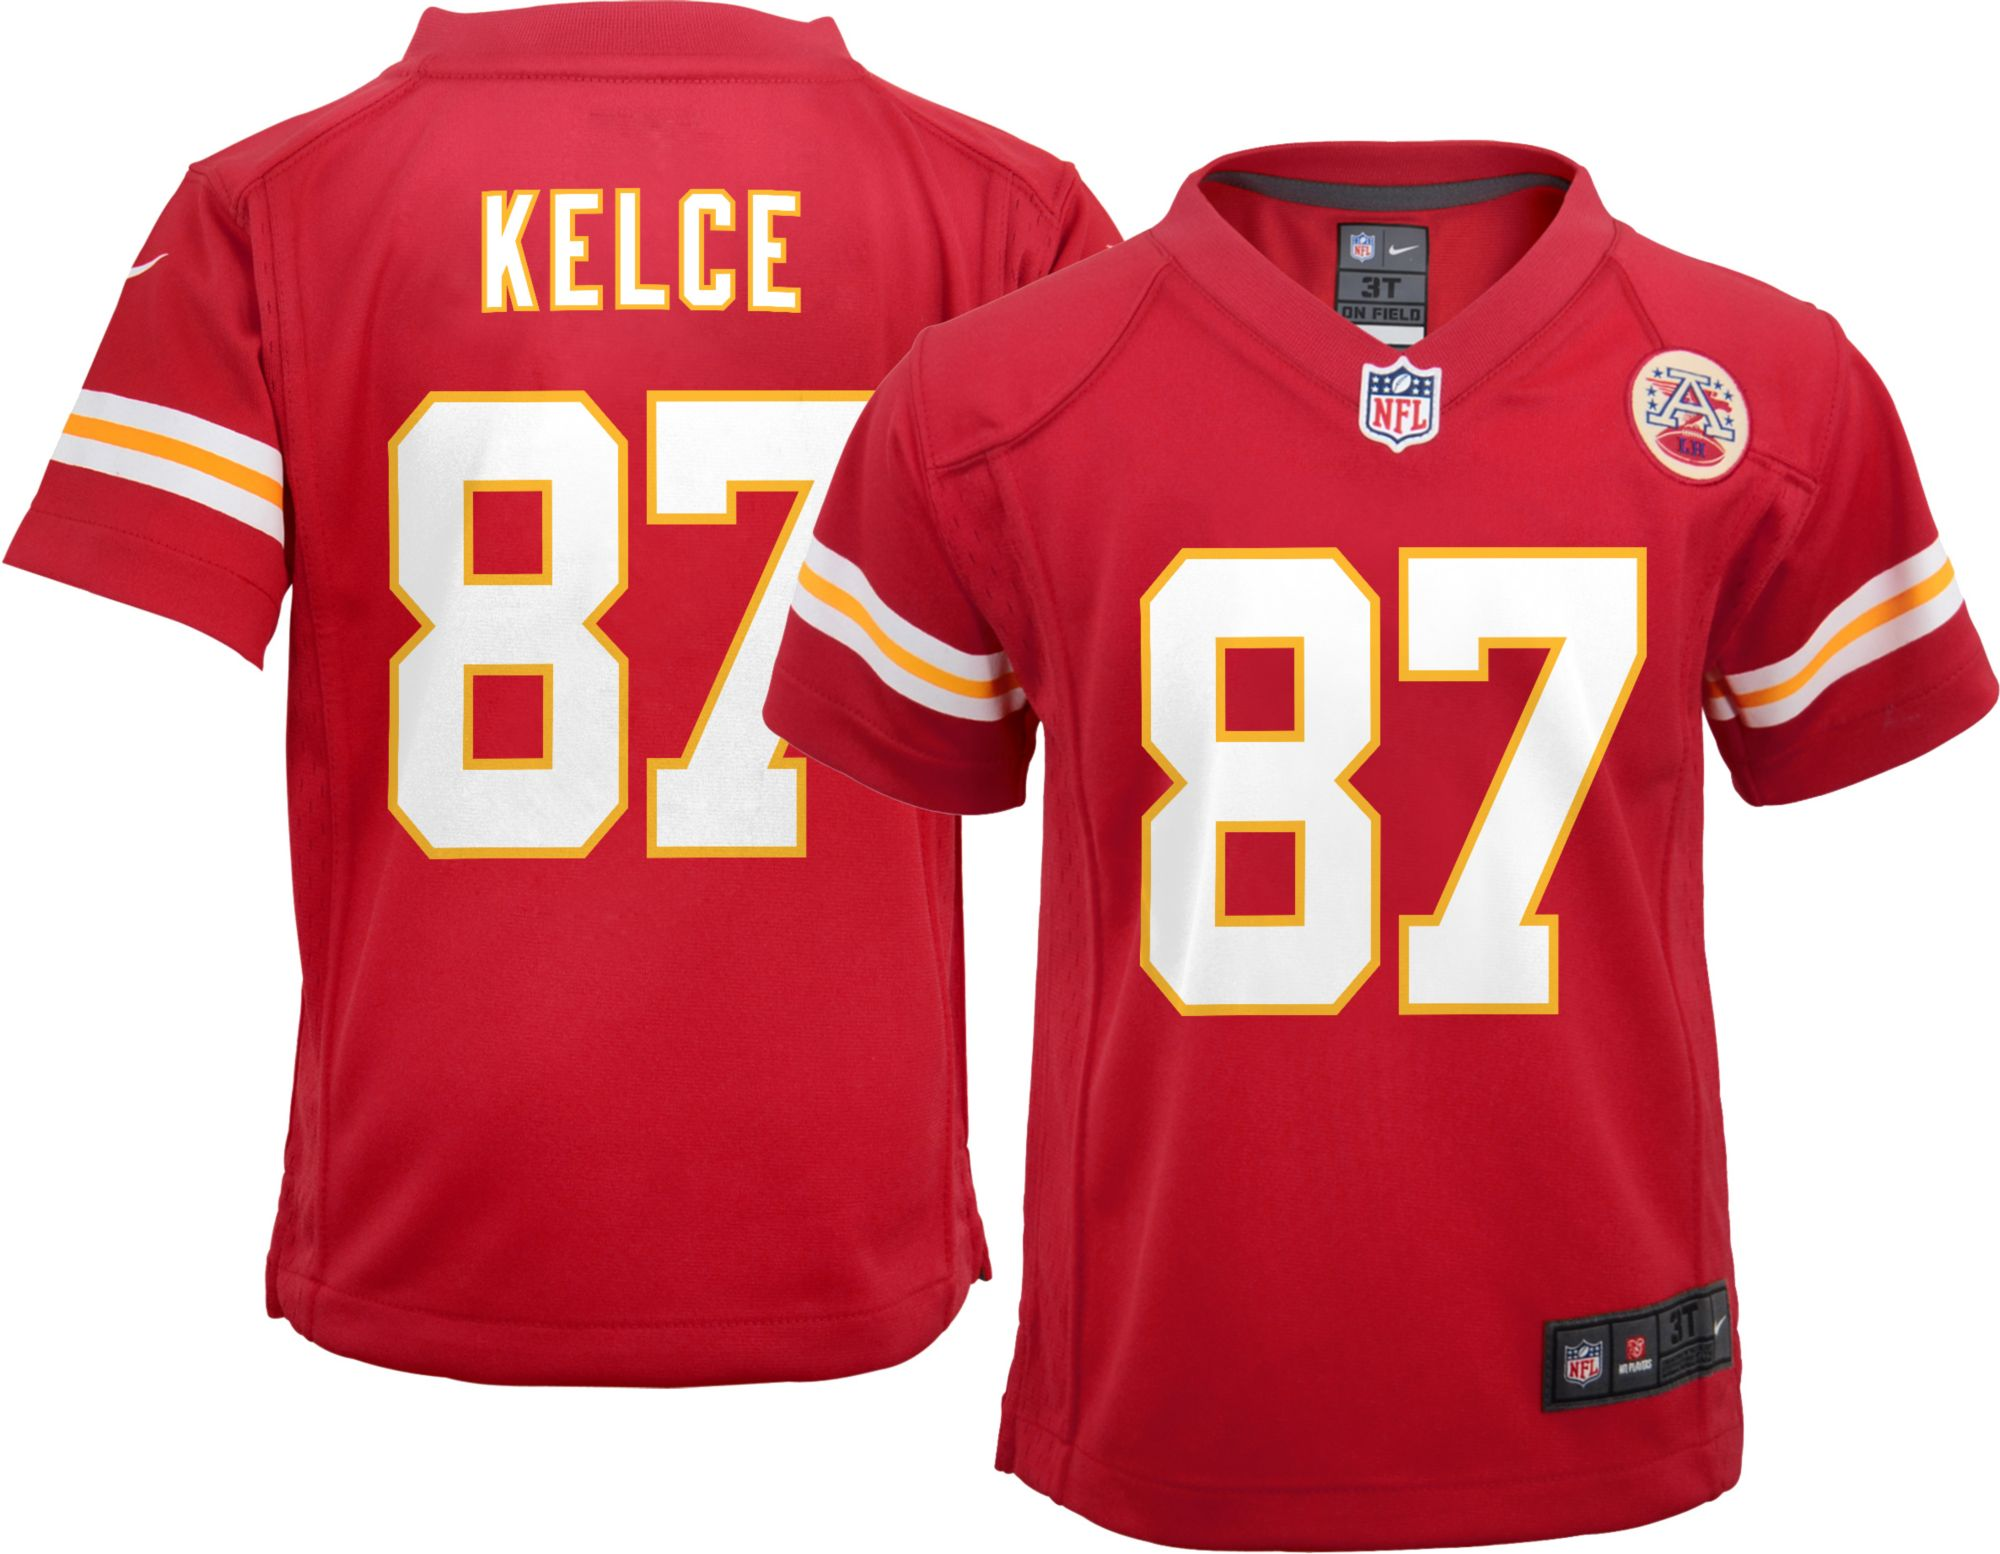 kc chiefs youth jersey